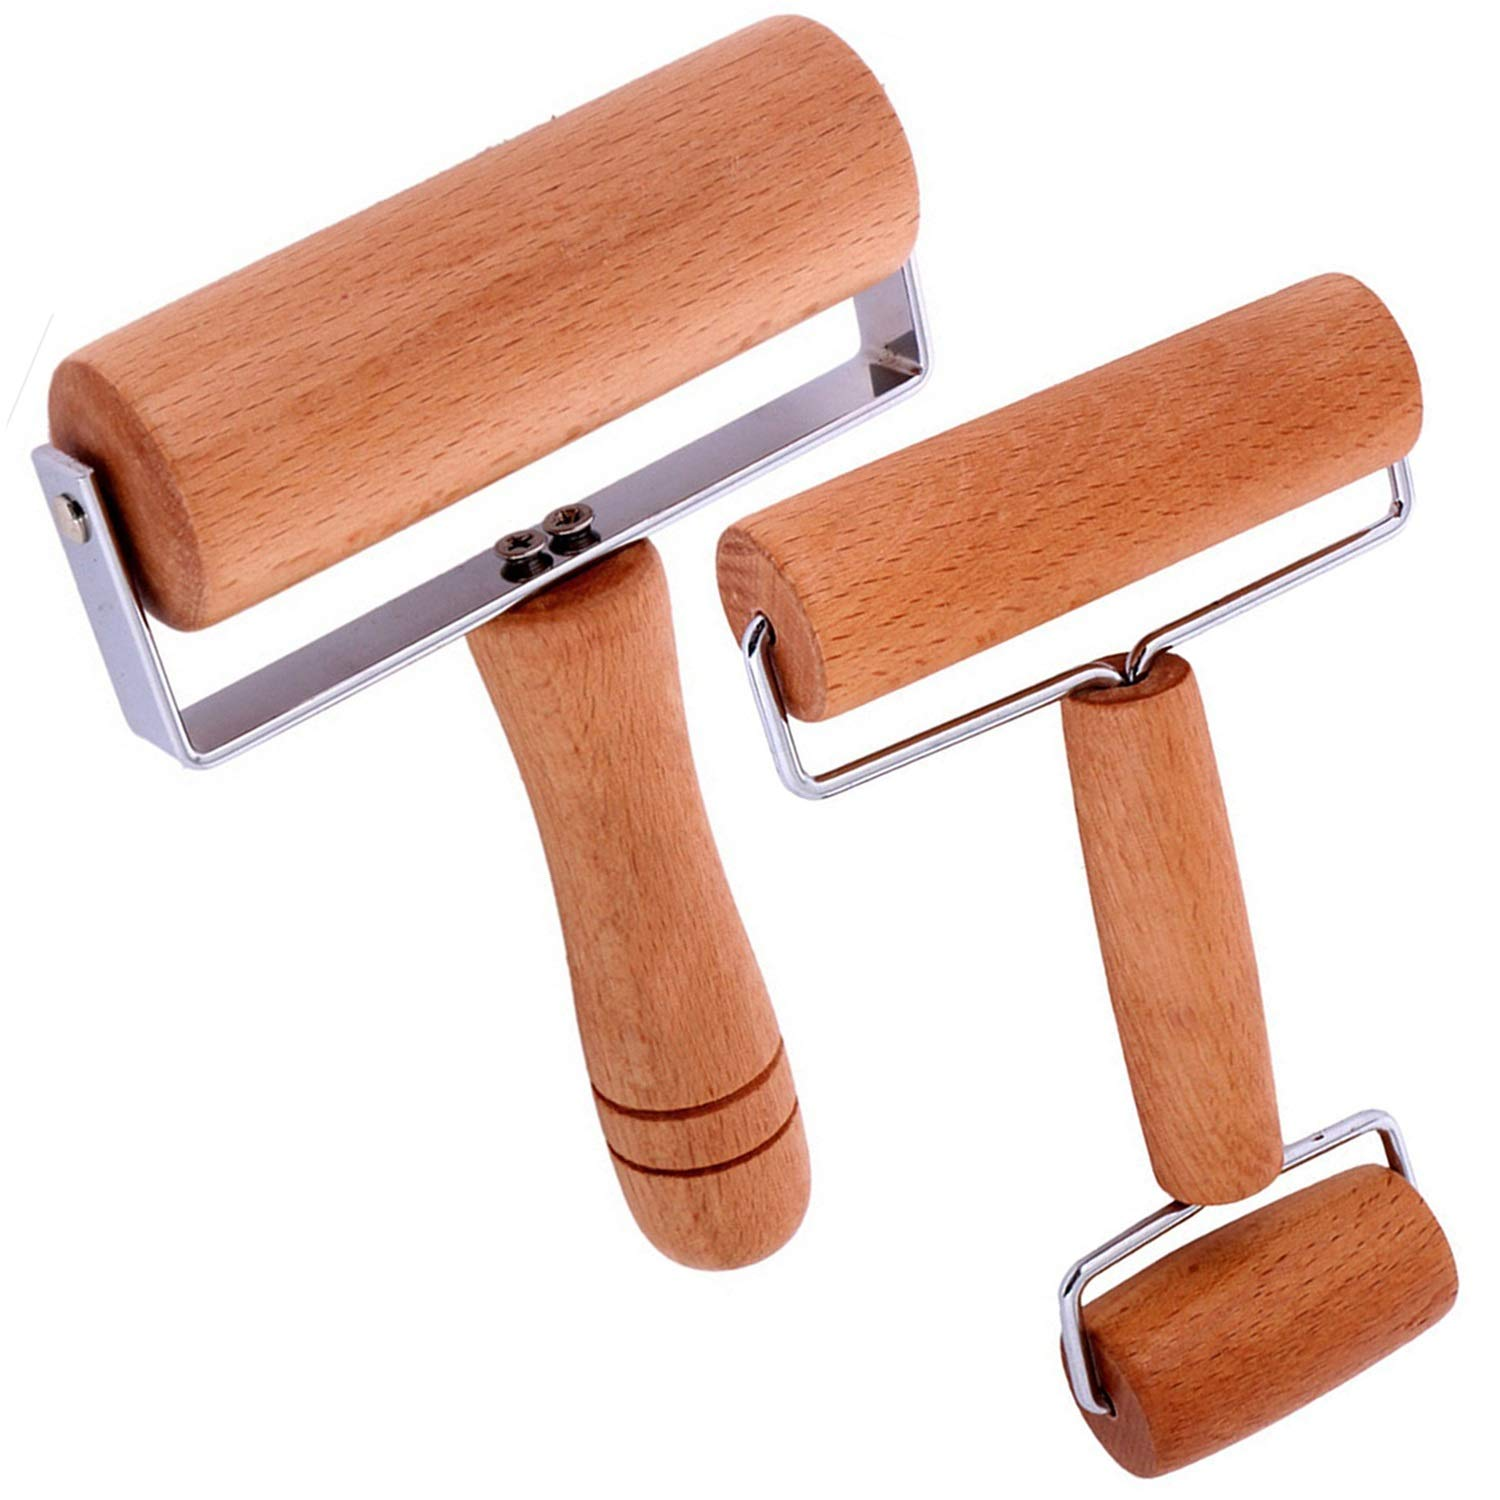 2 Pcs Wooden Pastry Pizza Roller Pin,Non Stick Rolling Pin for Baking Sold by Lasten